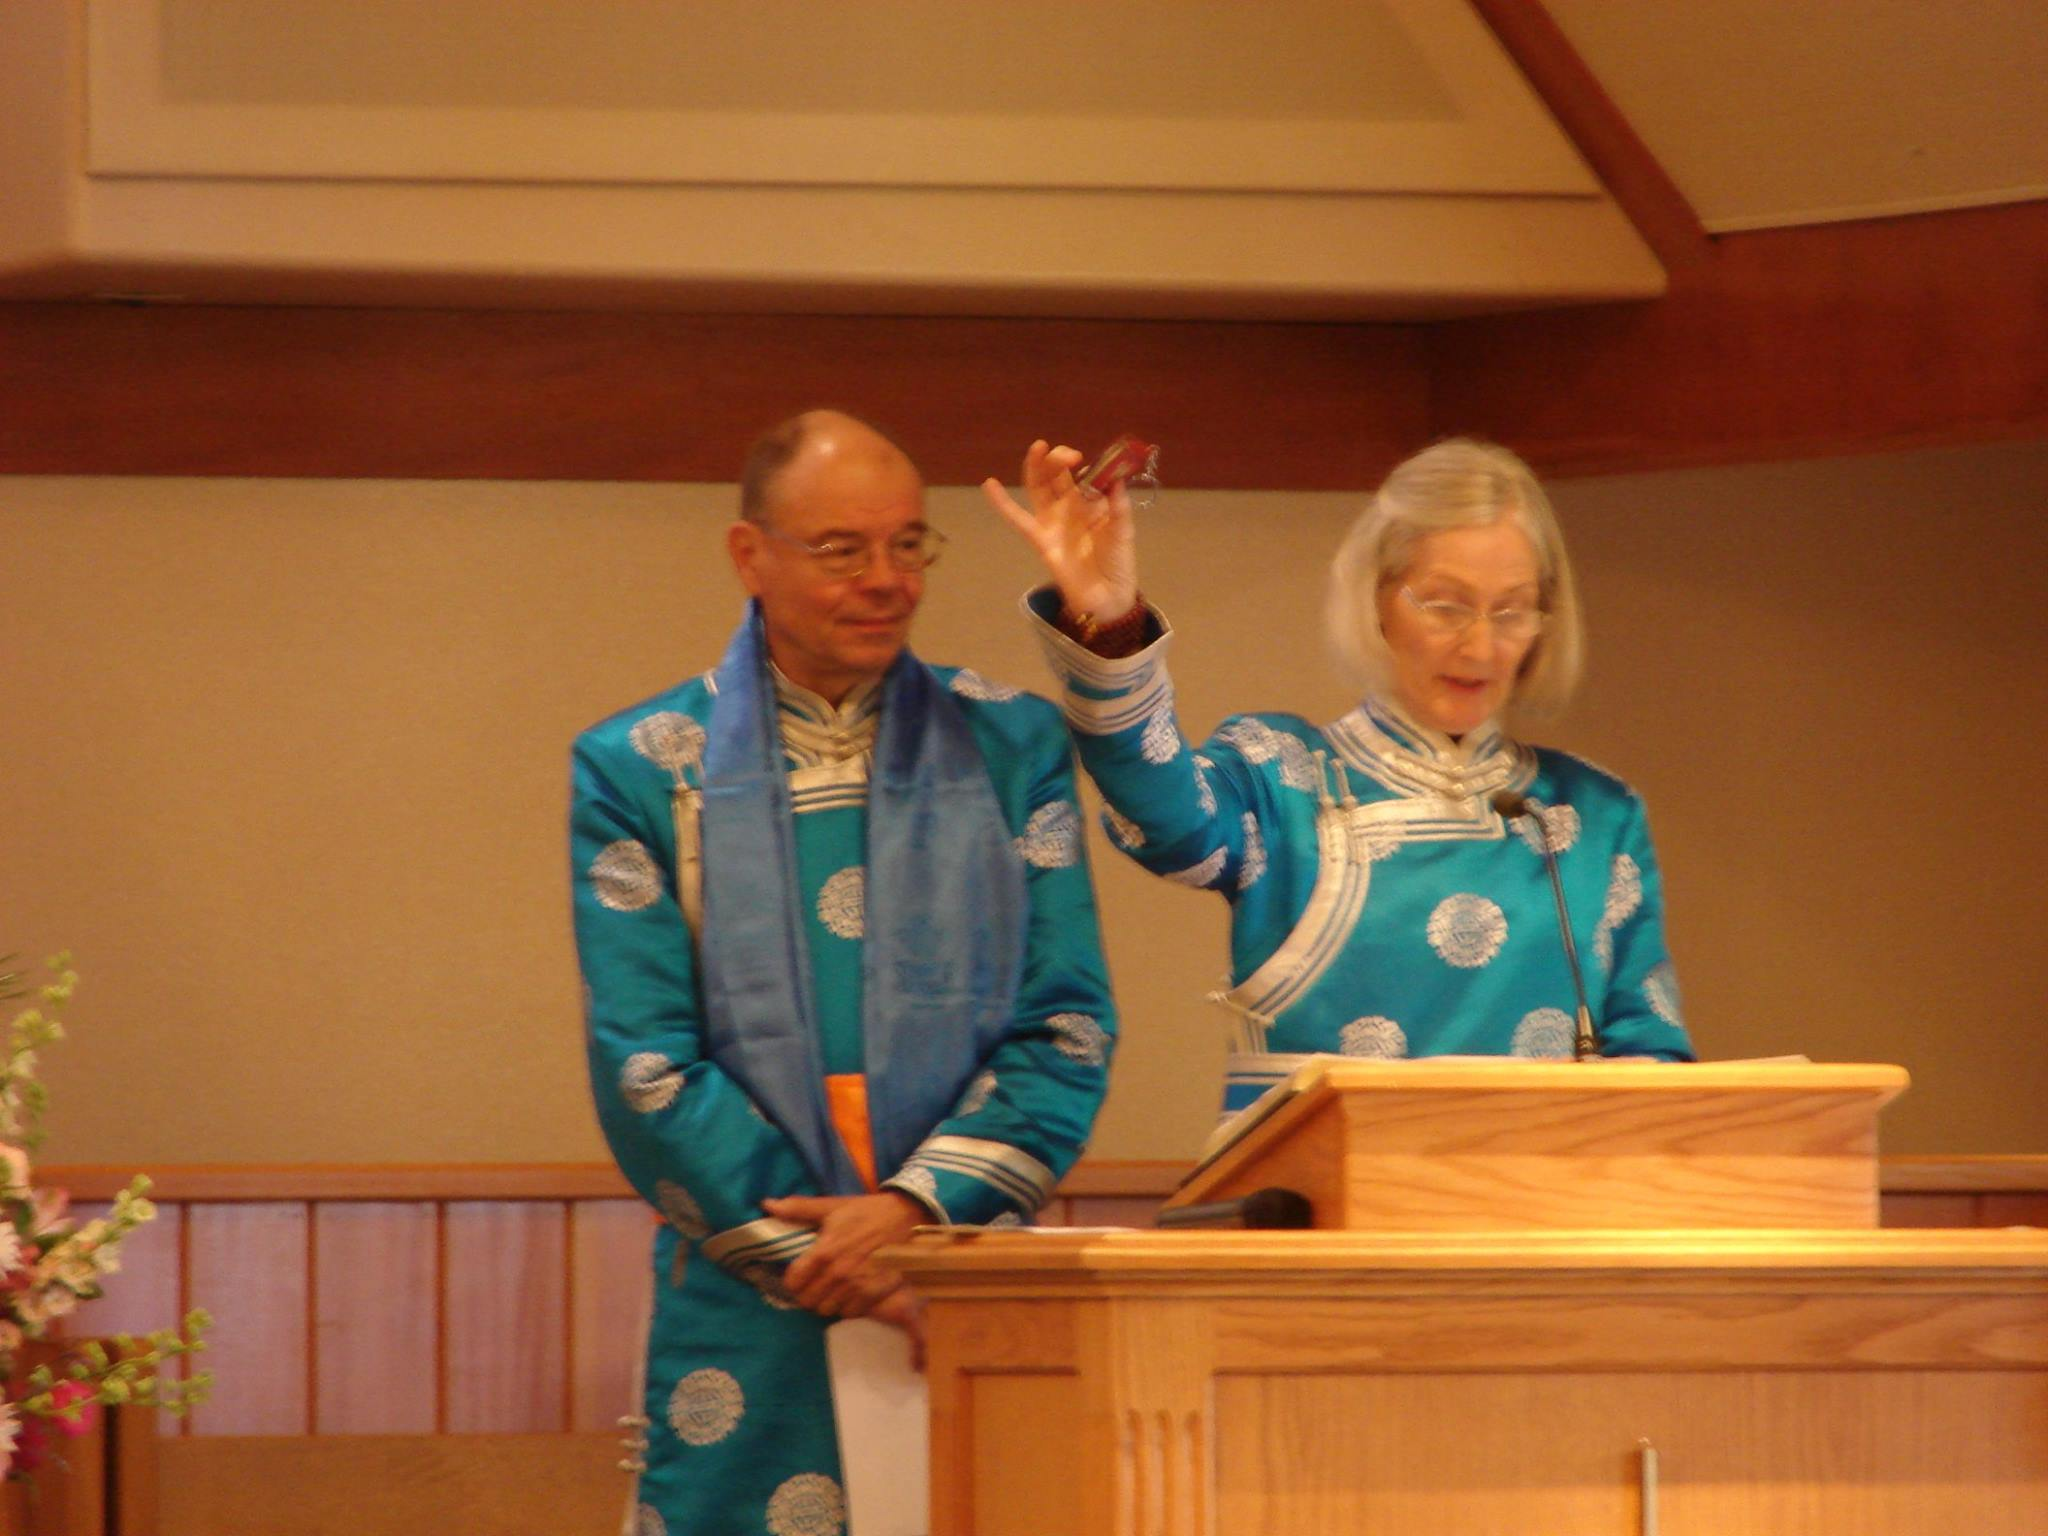 Hugh and Teena Anderson talk about their missionary work in Northern China.